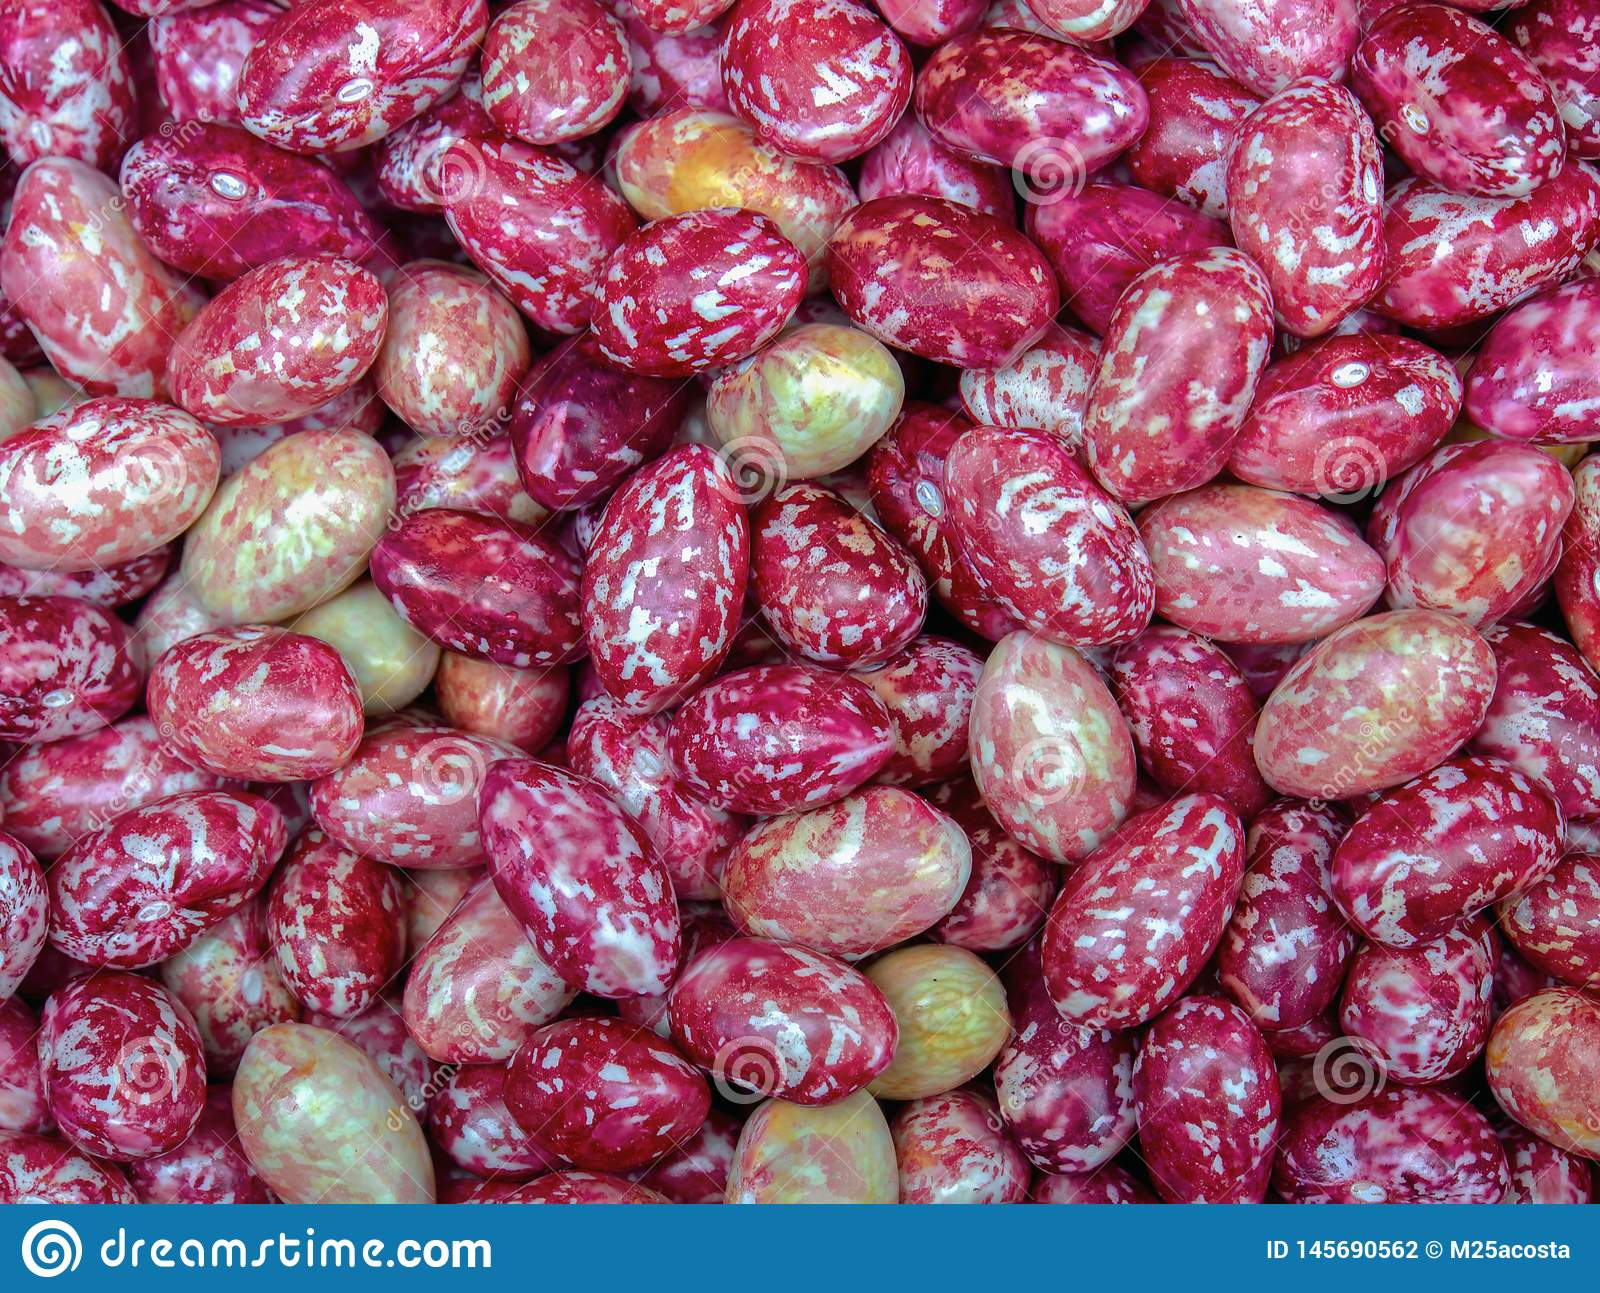 Heap of borlotti beans in a market